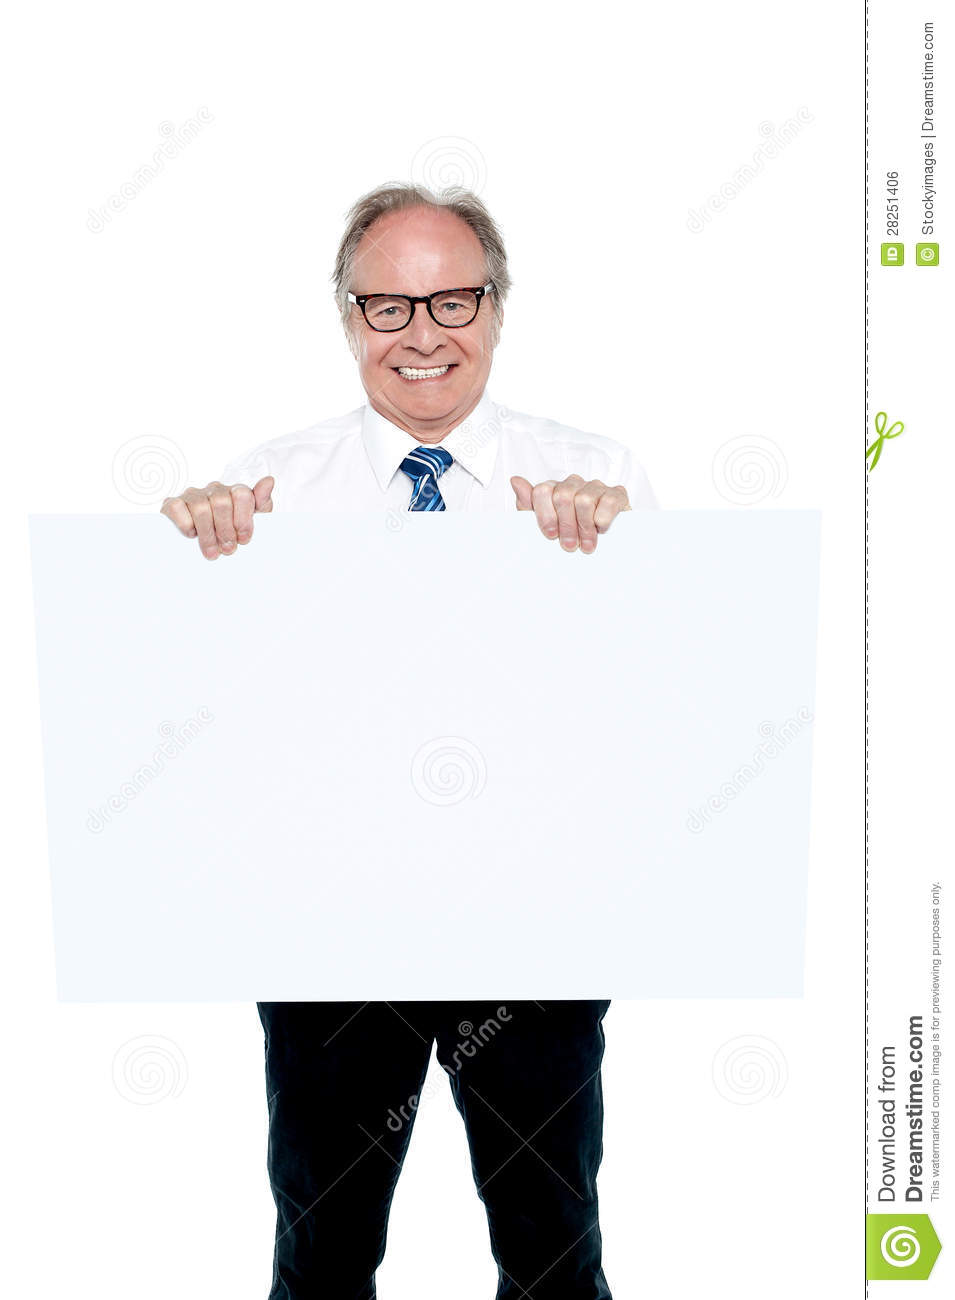 Senior Marketing Manager Holding Up A Blank Ad Board Royalty Free Stock Image  Image 28251406